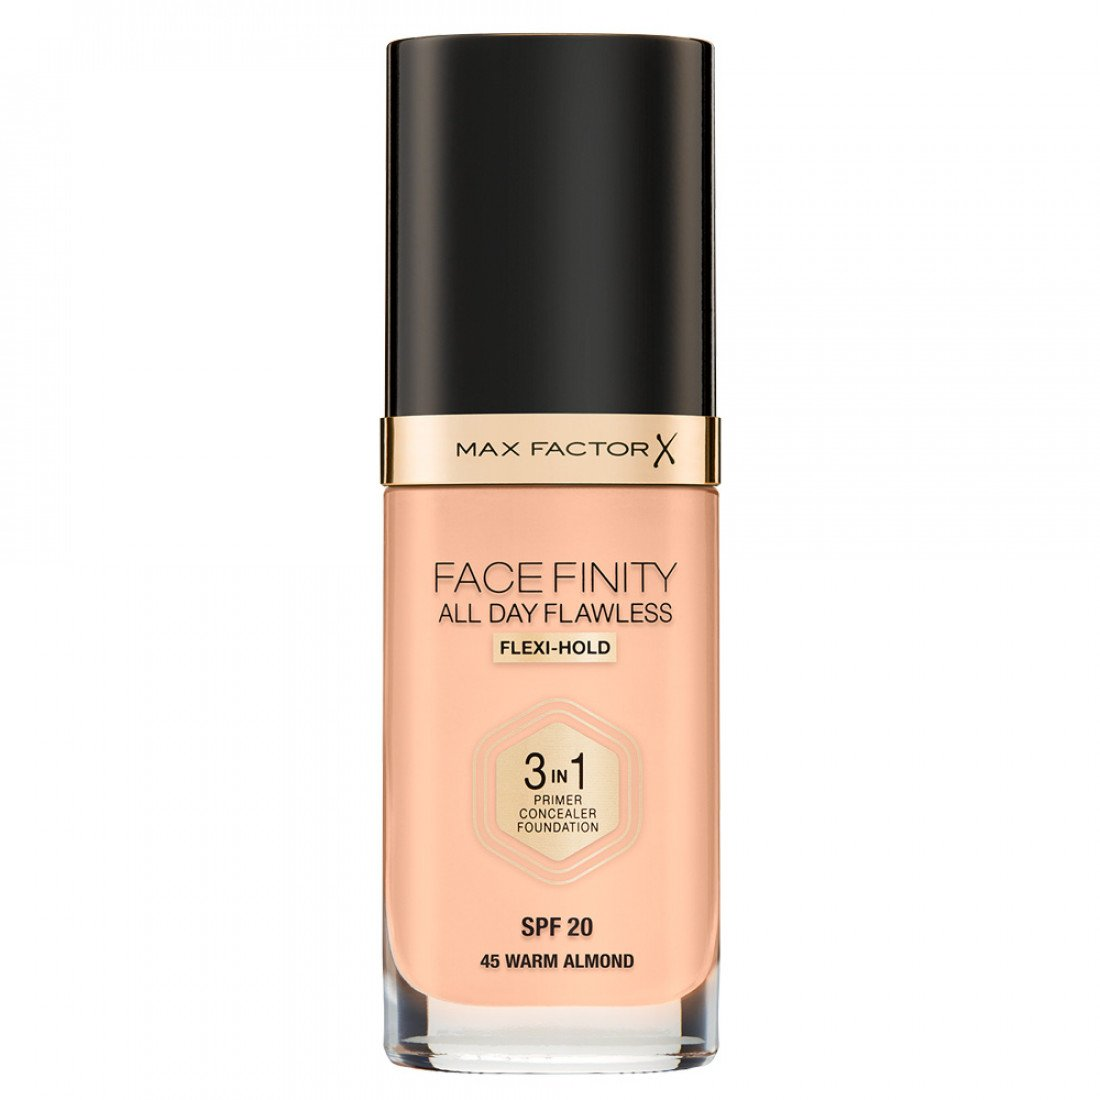 Facefinity 3in1 pudra 045